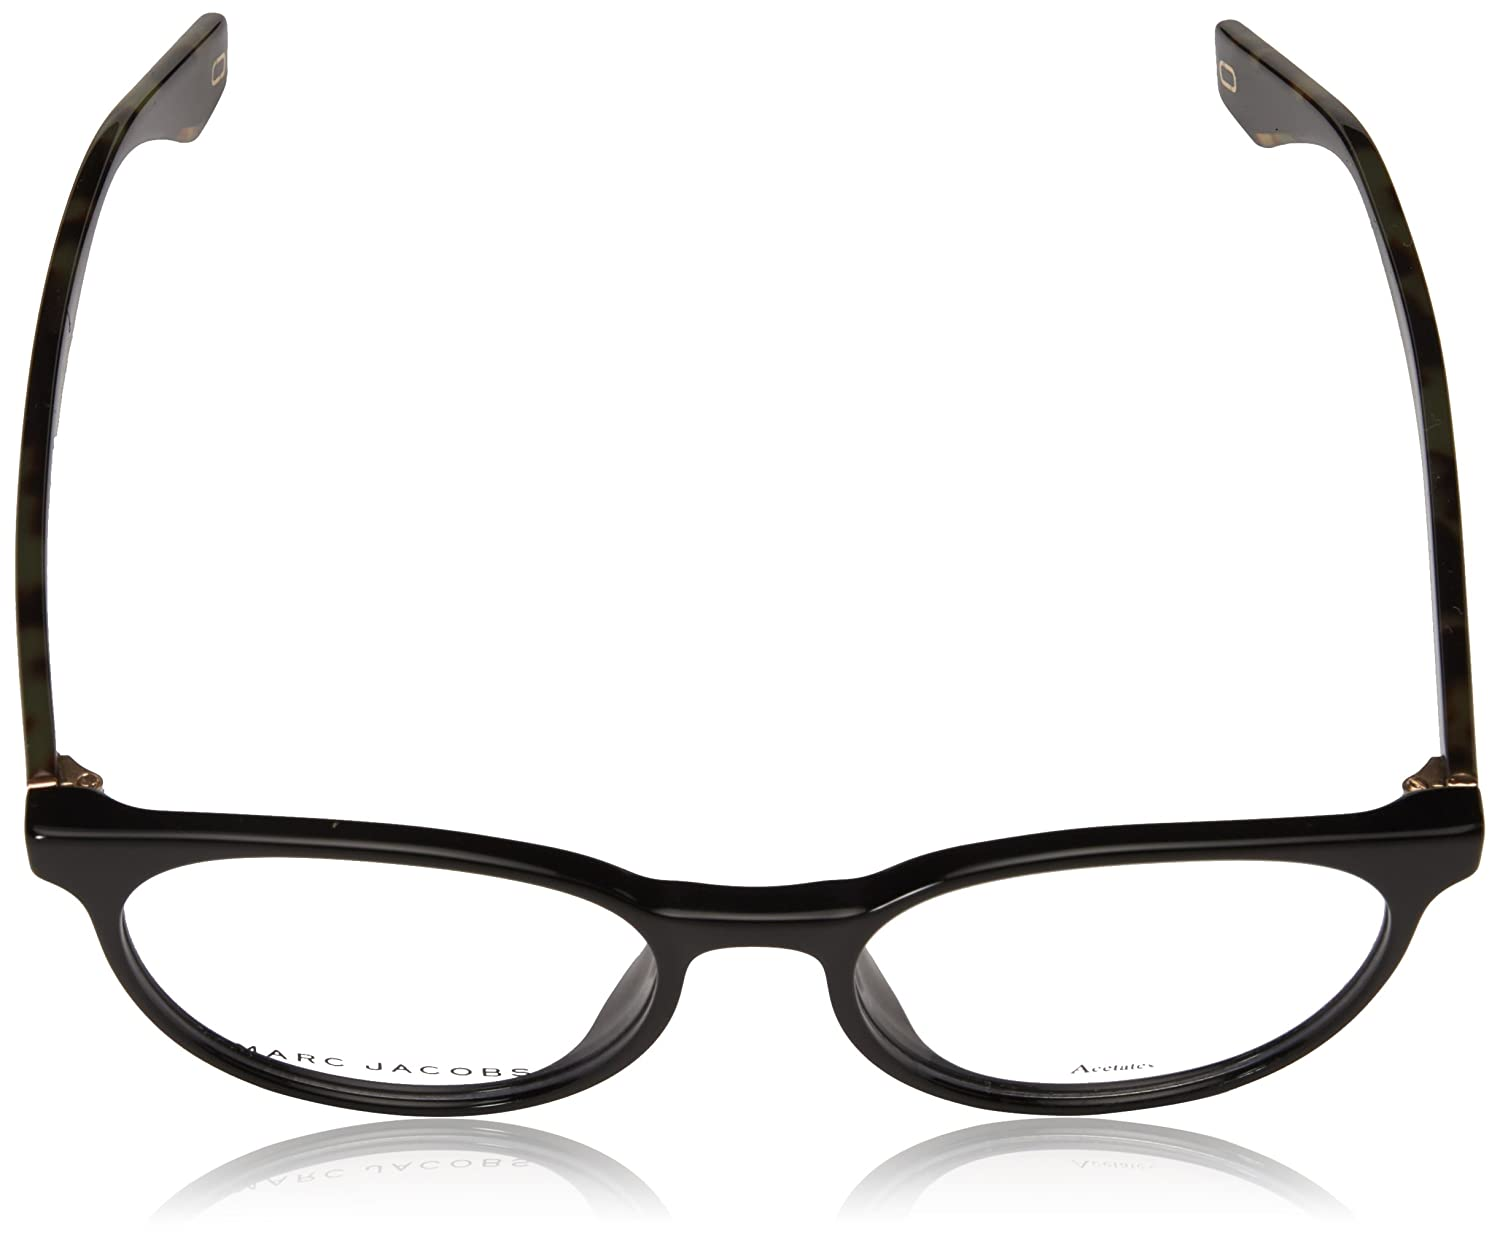 77d19eee19 Amazon.com  Marc Jacobs frame (MARC-283 807) Acetate Shiny Black - Marble  Brown  Clothing